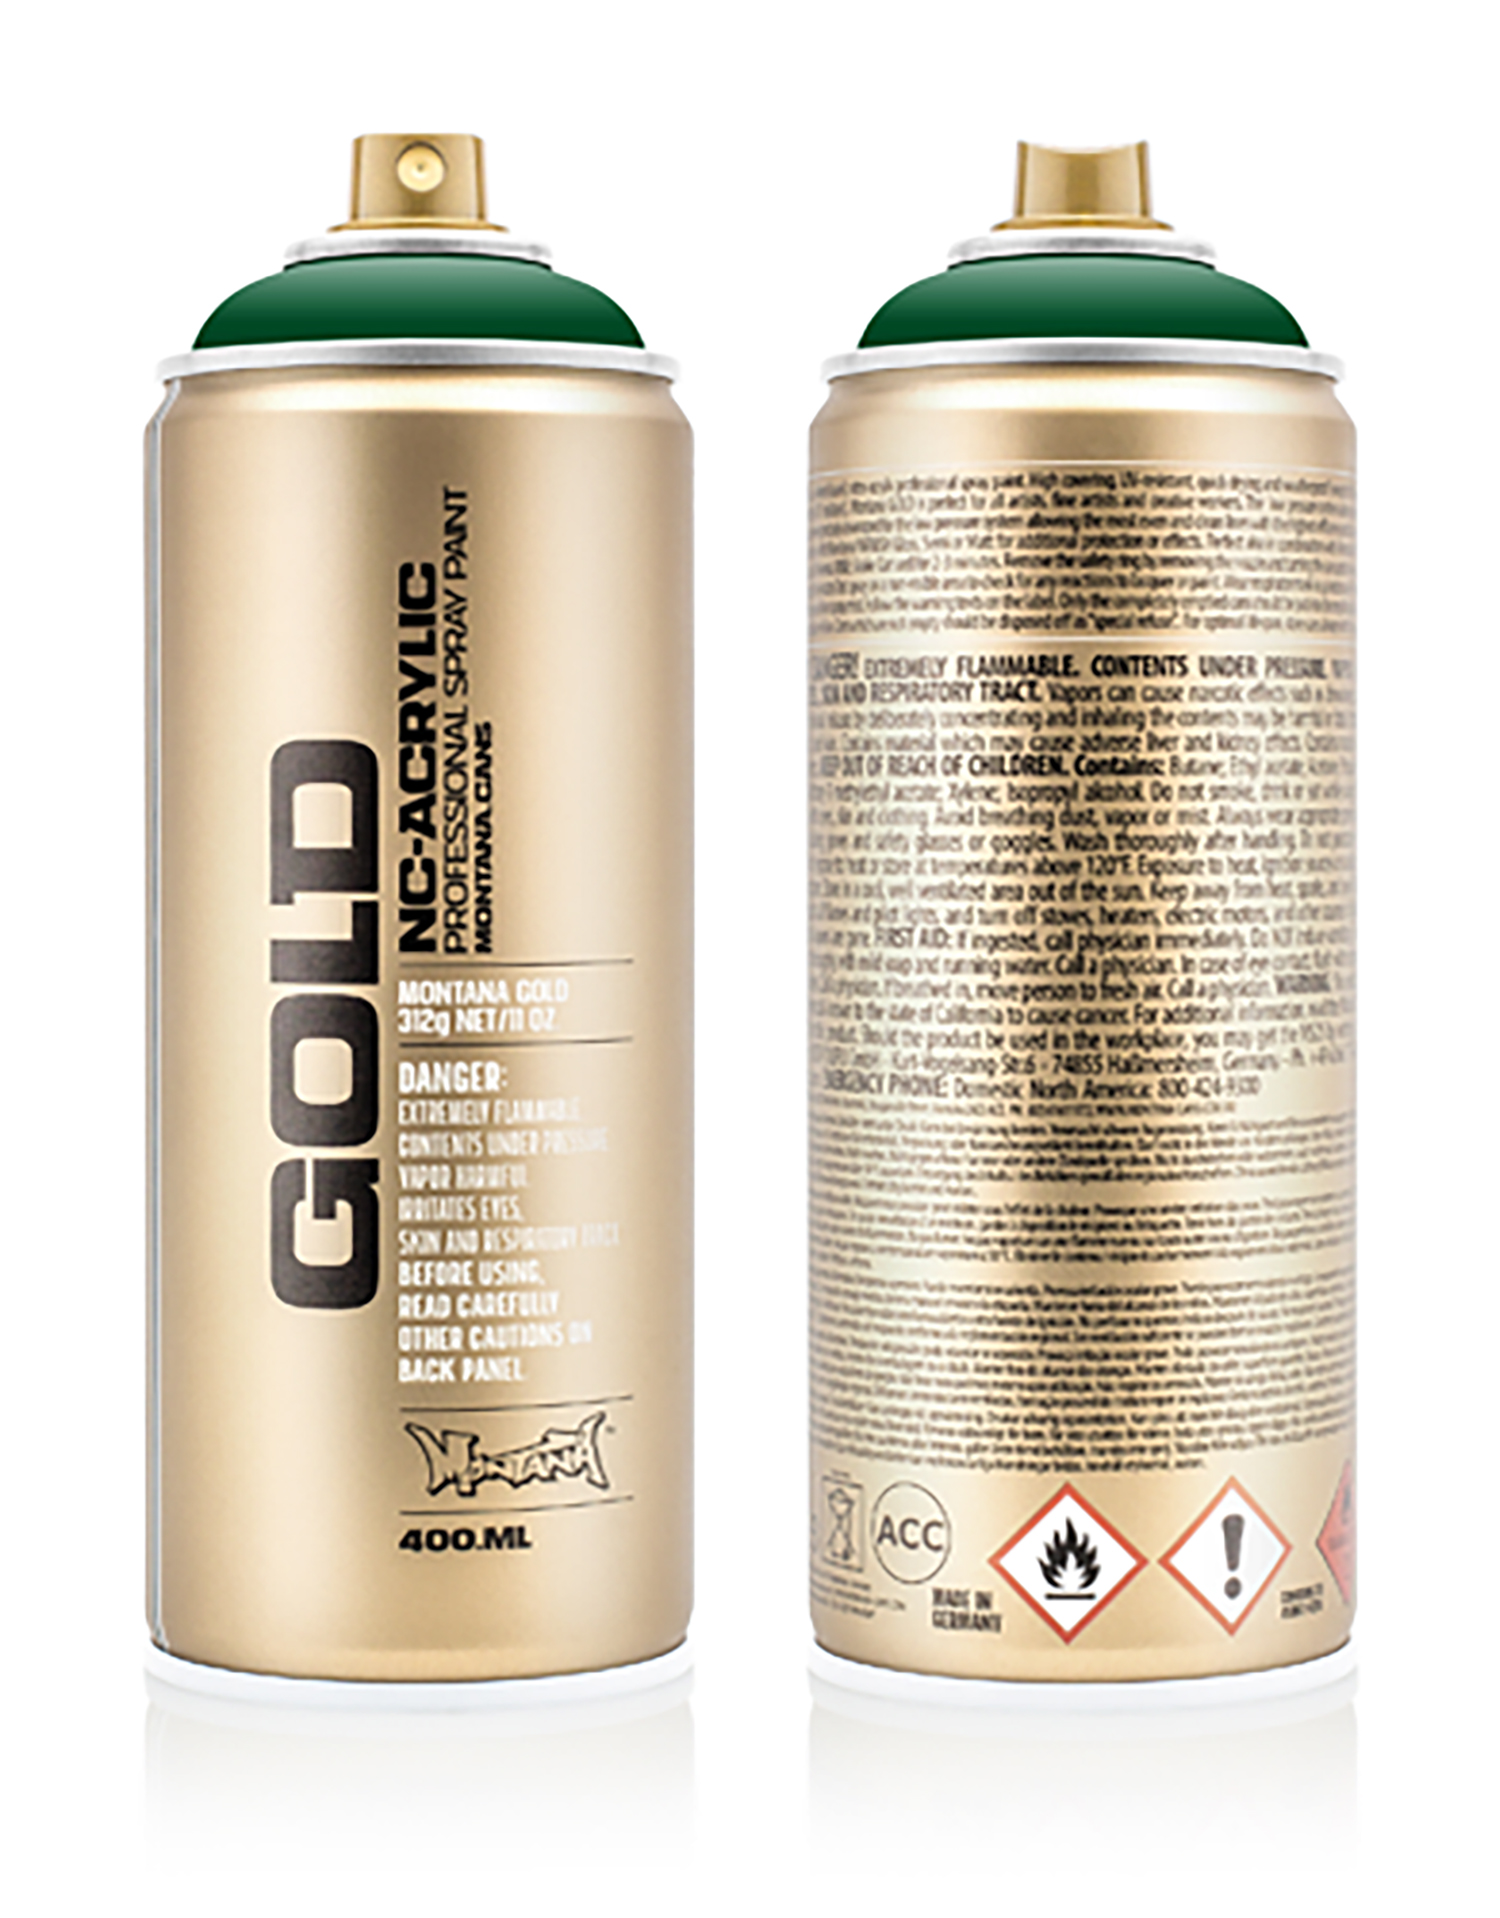 MONTANA-GOLD-SPRAY-400ML-G-6070